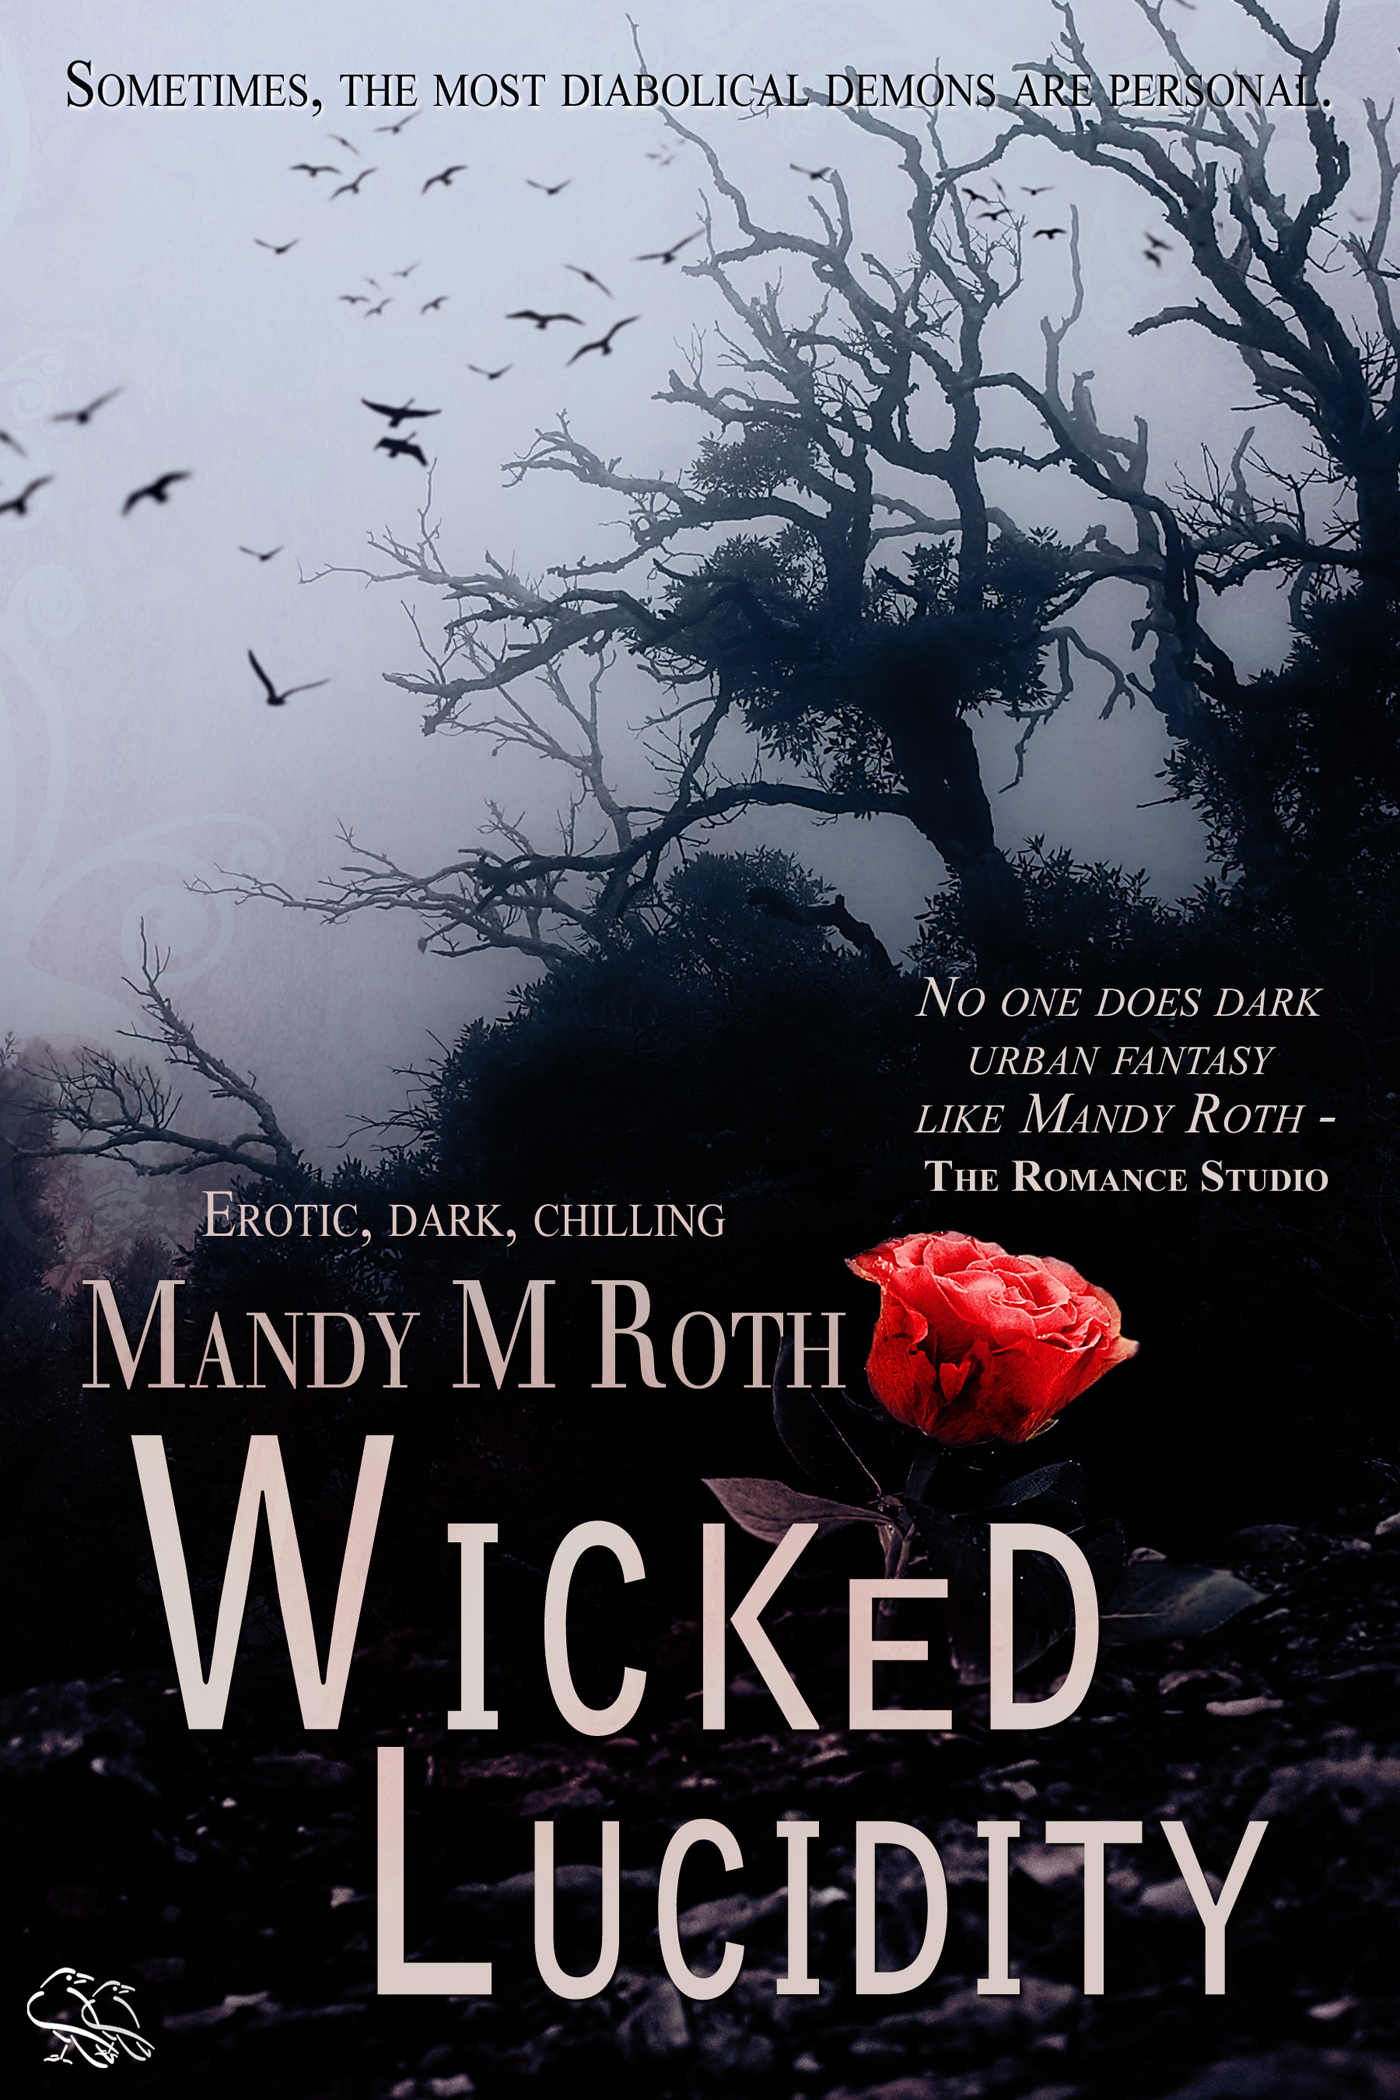 Mandy M. Roth - Wicked Lucidity